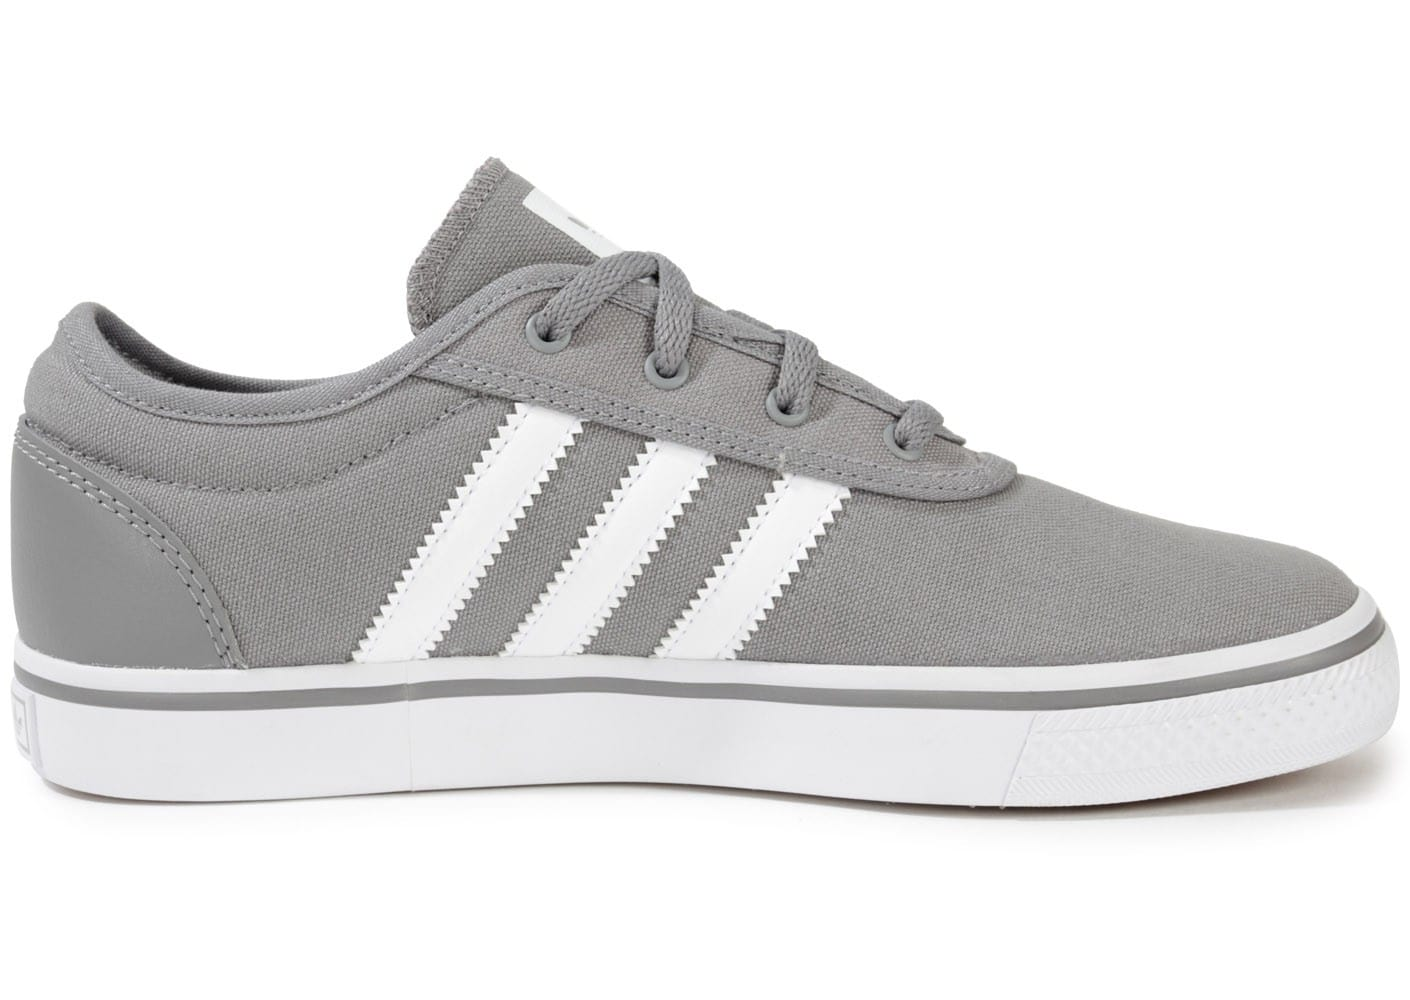 ... Chaussures adidas Adi Ease Toile Junior Grise vue dessous ...